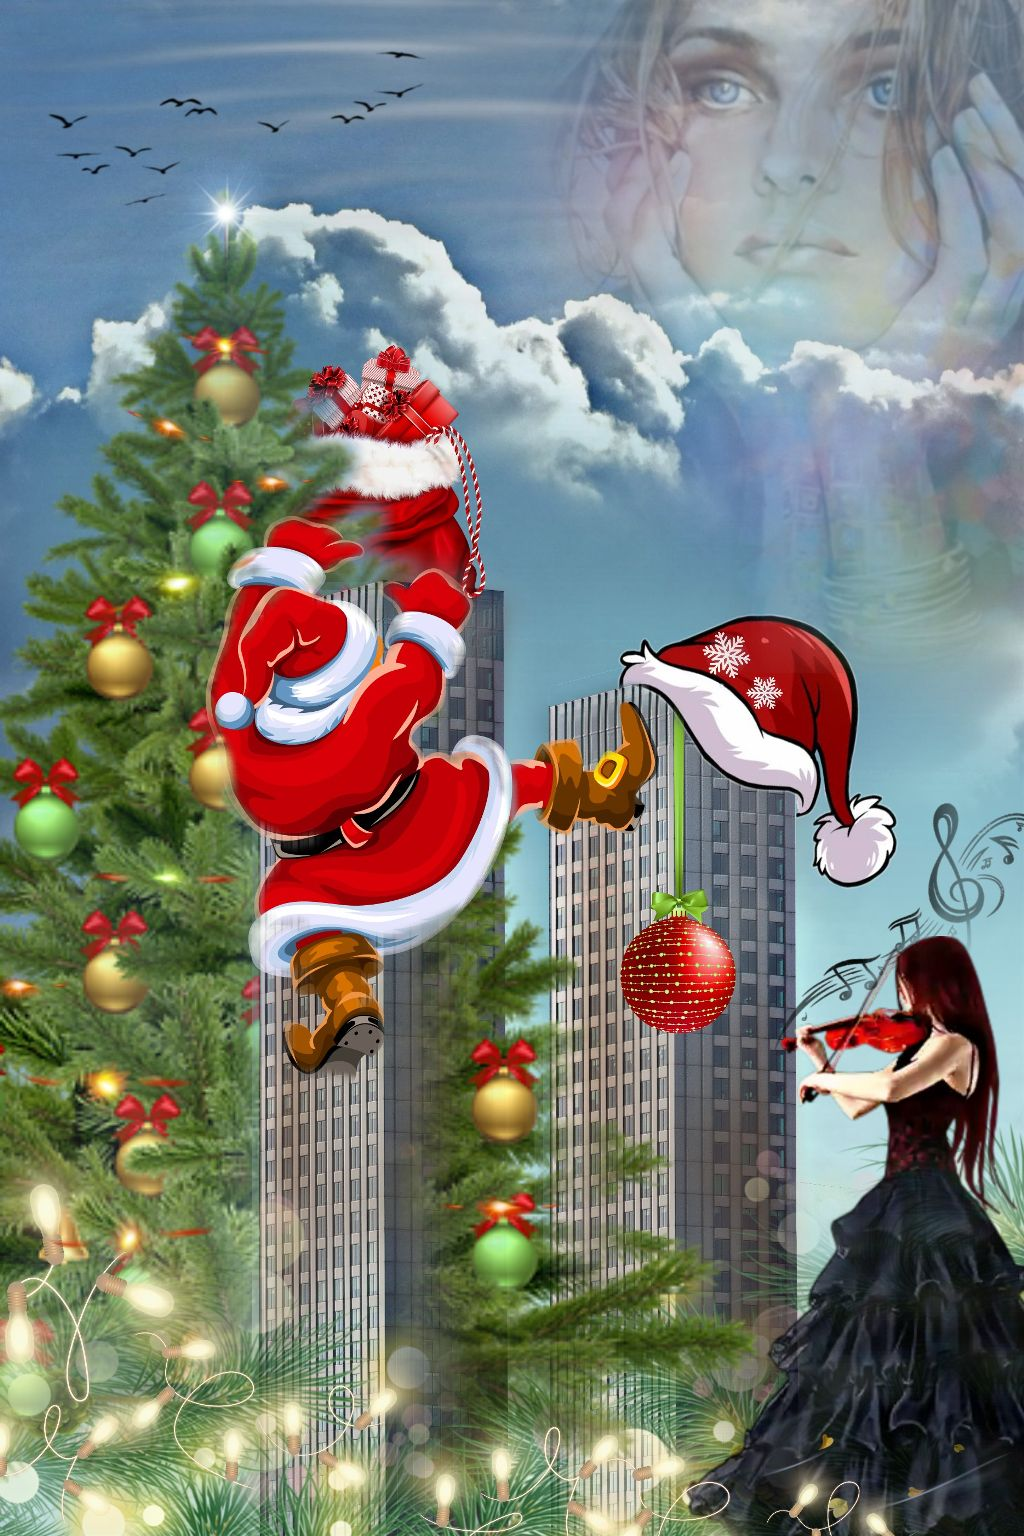 #freetoedit #freetoedit #bunia0914 #fantasy #story #mystory #myfantasy #tale #mytale #imaginations #myimaginations #myedit #myart #story #mystory #madewitpicsart #magicworld #christmastree #santaklaus #musik #clouds #birds #violin #christmas #merrychristmas #skyscrapers #lights #fantasyworld #happyday #winter #christmastime